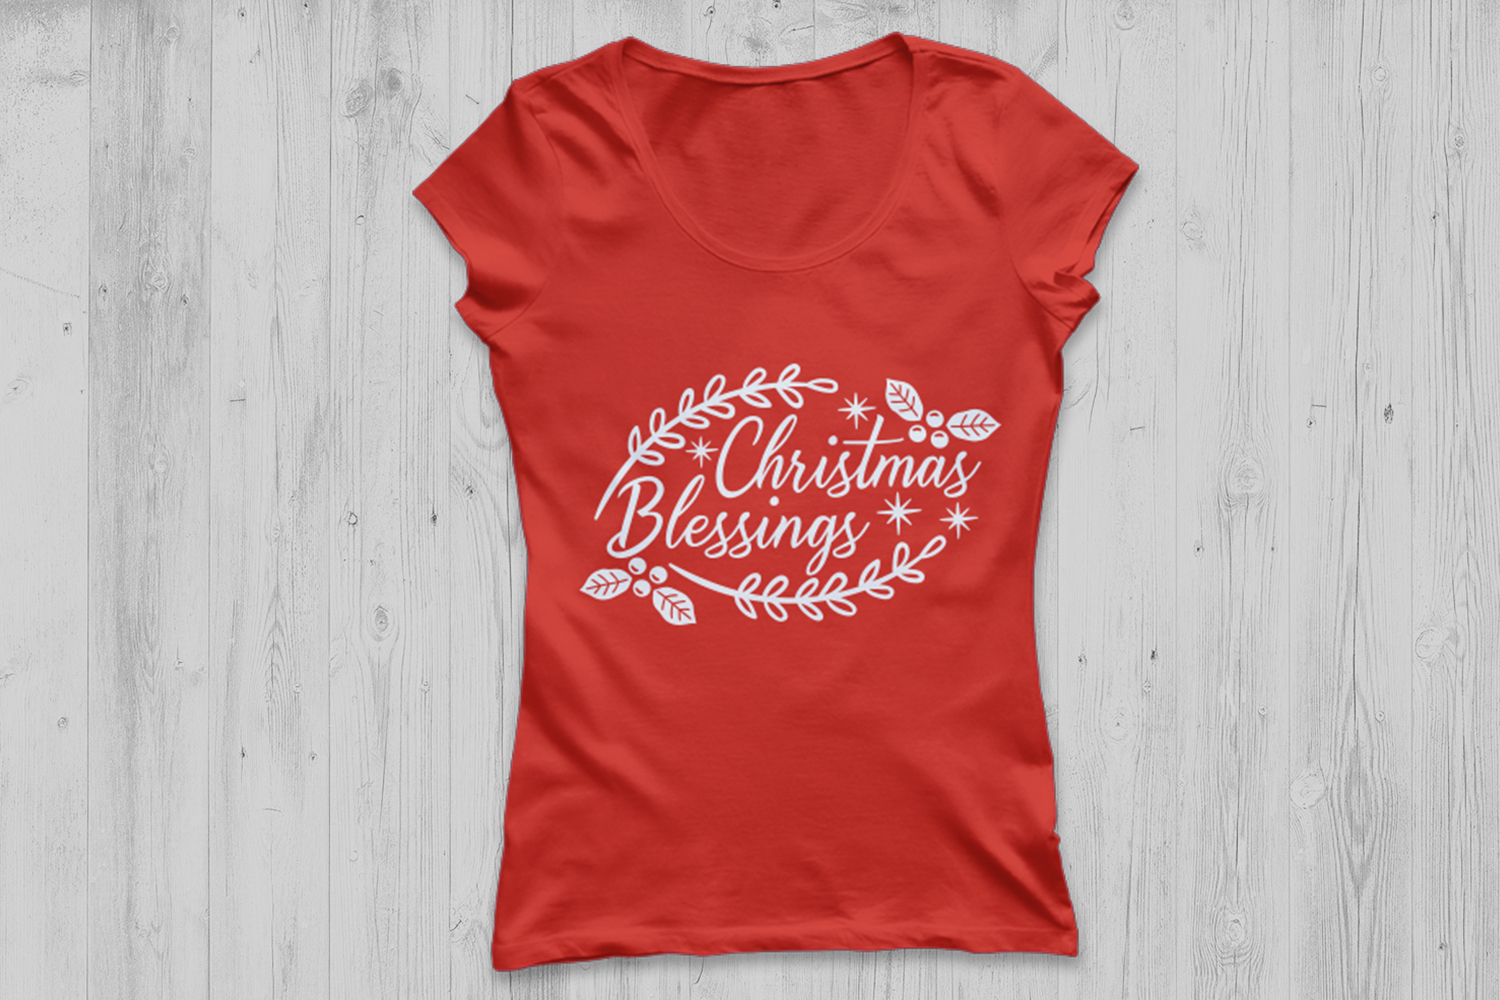 Christmas Blessings Svg, Christmas Svg, Holidays Svg. example image 2